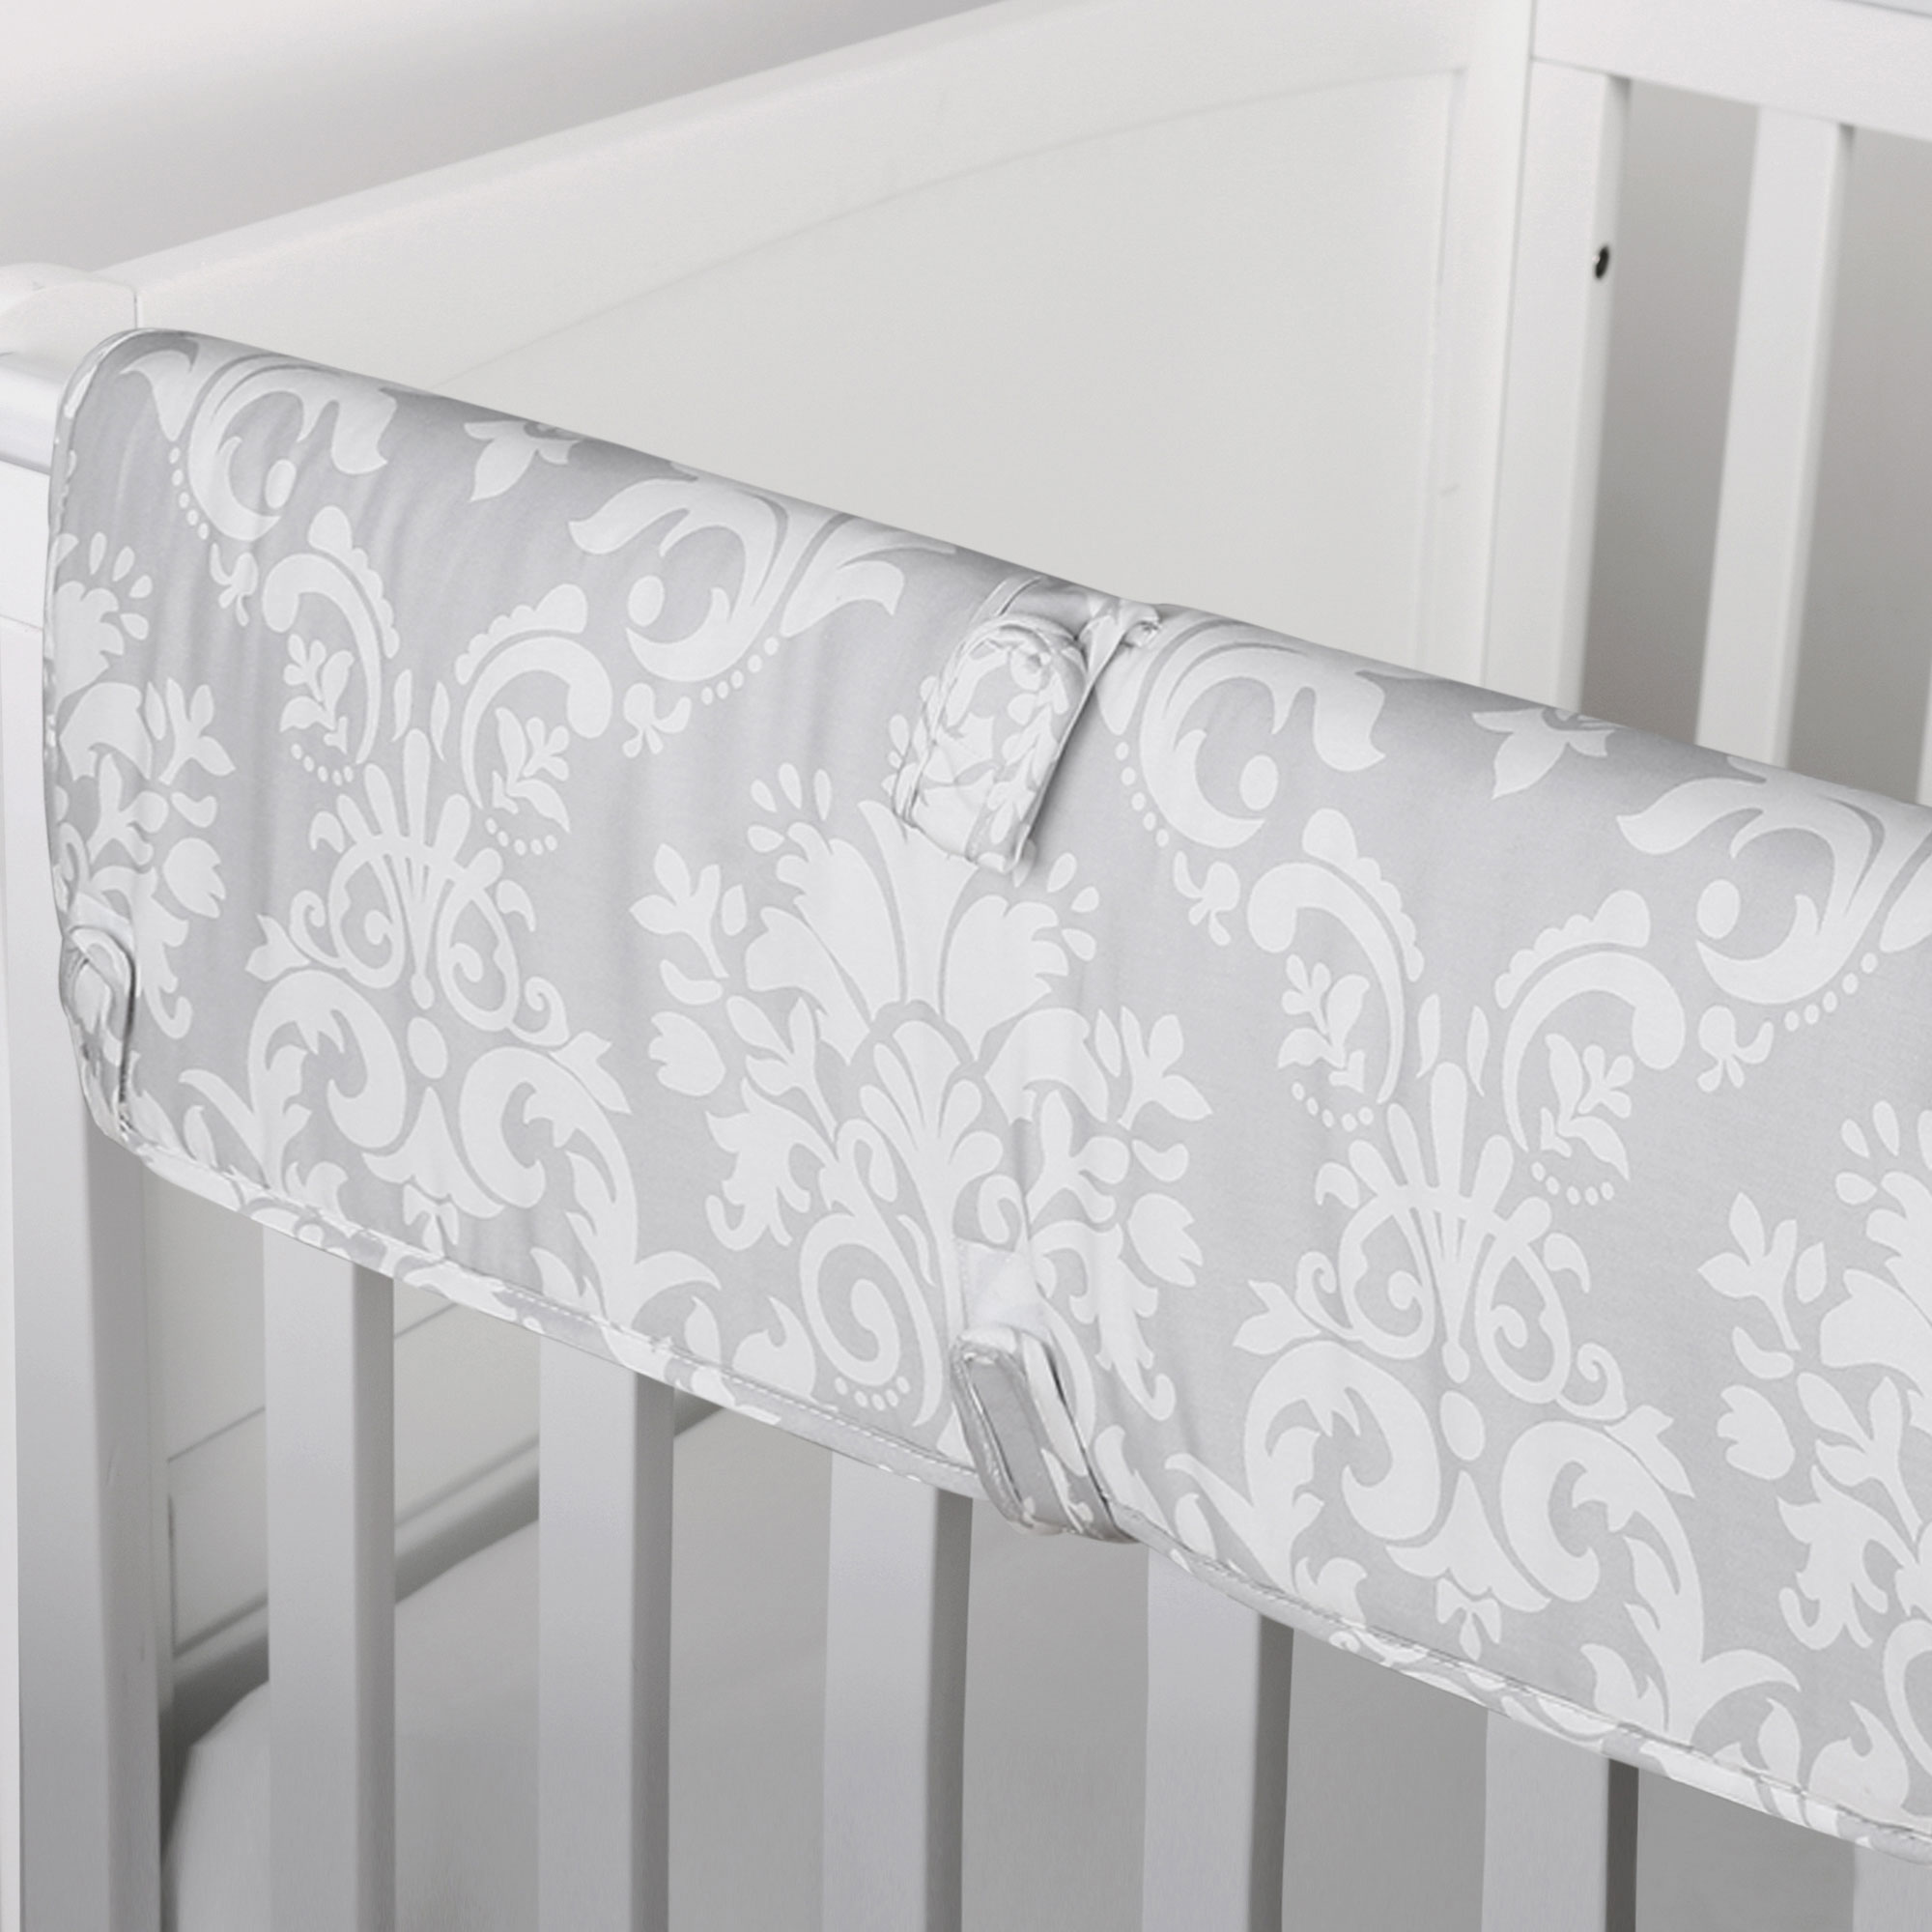 The Peanut Shell Baby Crib Rail Guard - Grey Floral Damask Print - 100% Cotton Sateen Cover, Polyester Fill